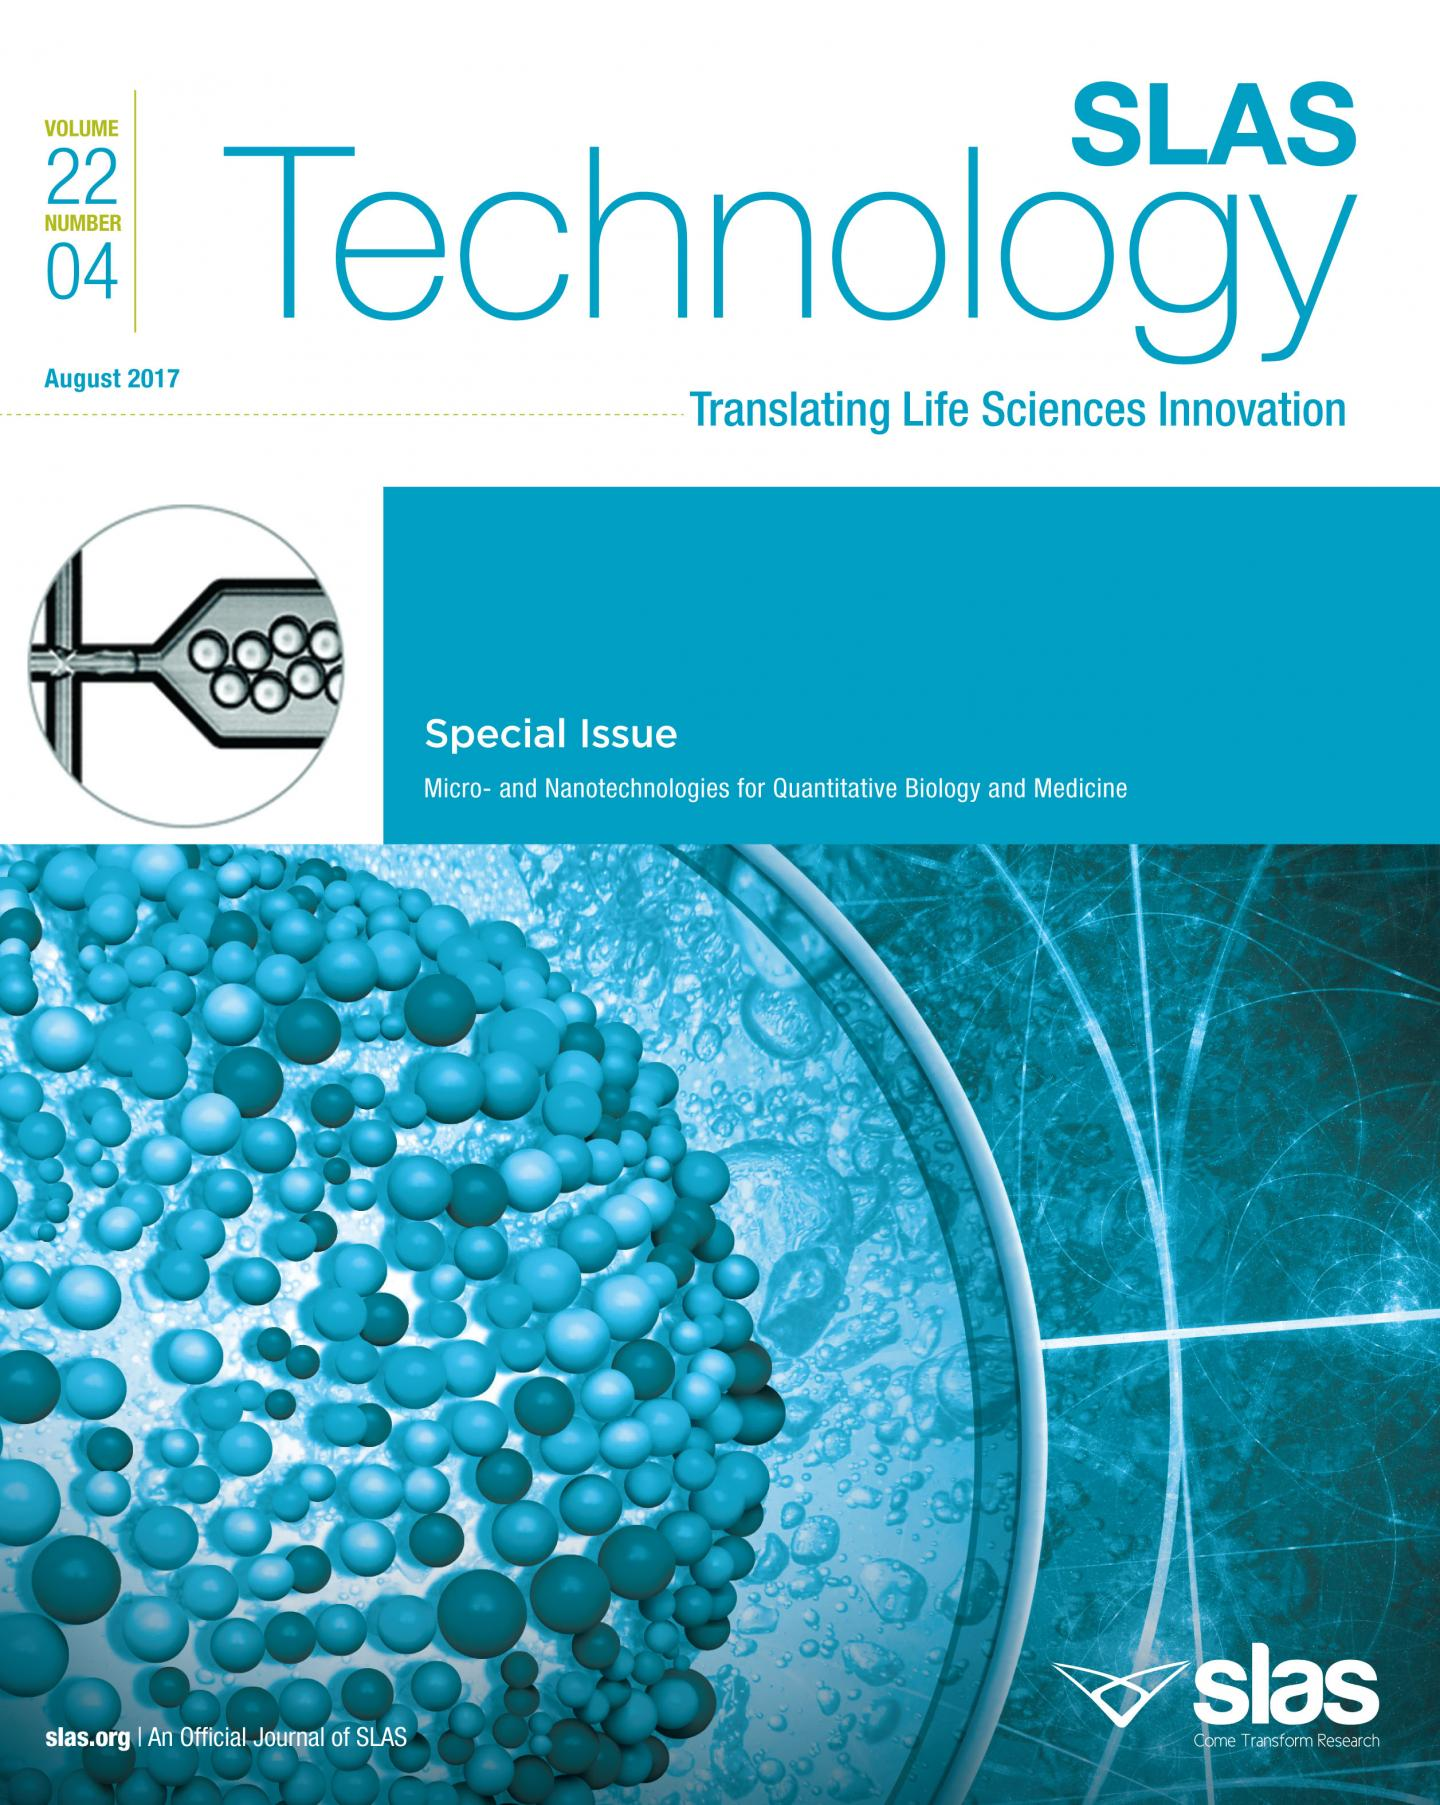 Special Issue: Micro- and Nanotechnologies for Quantitative Biology and Medicine